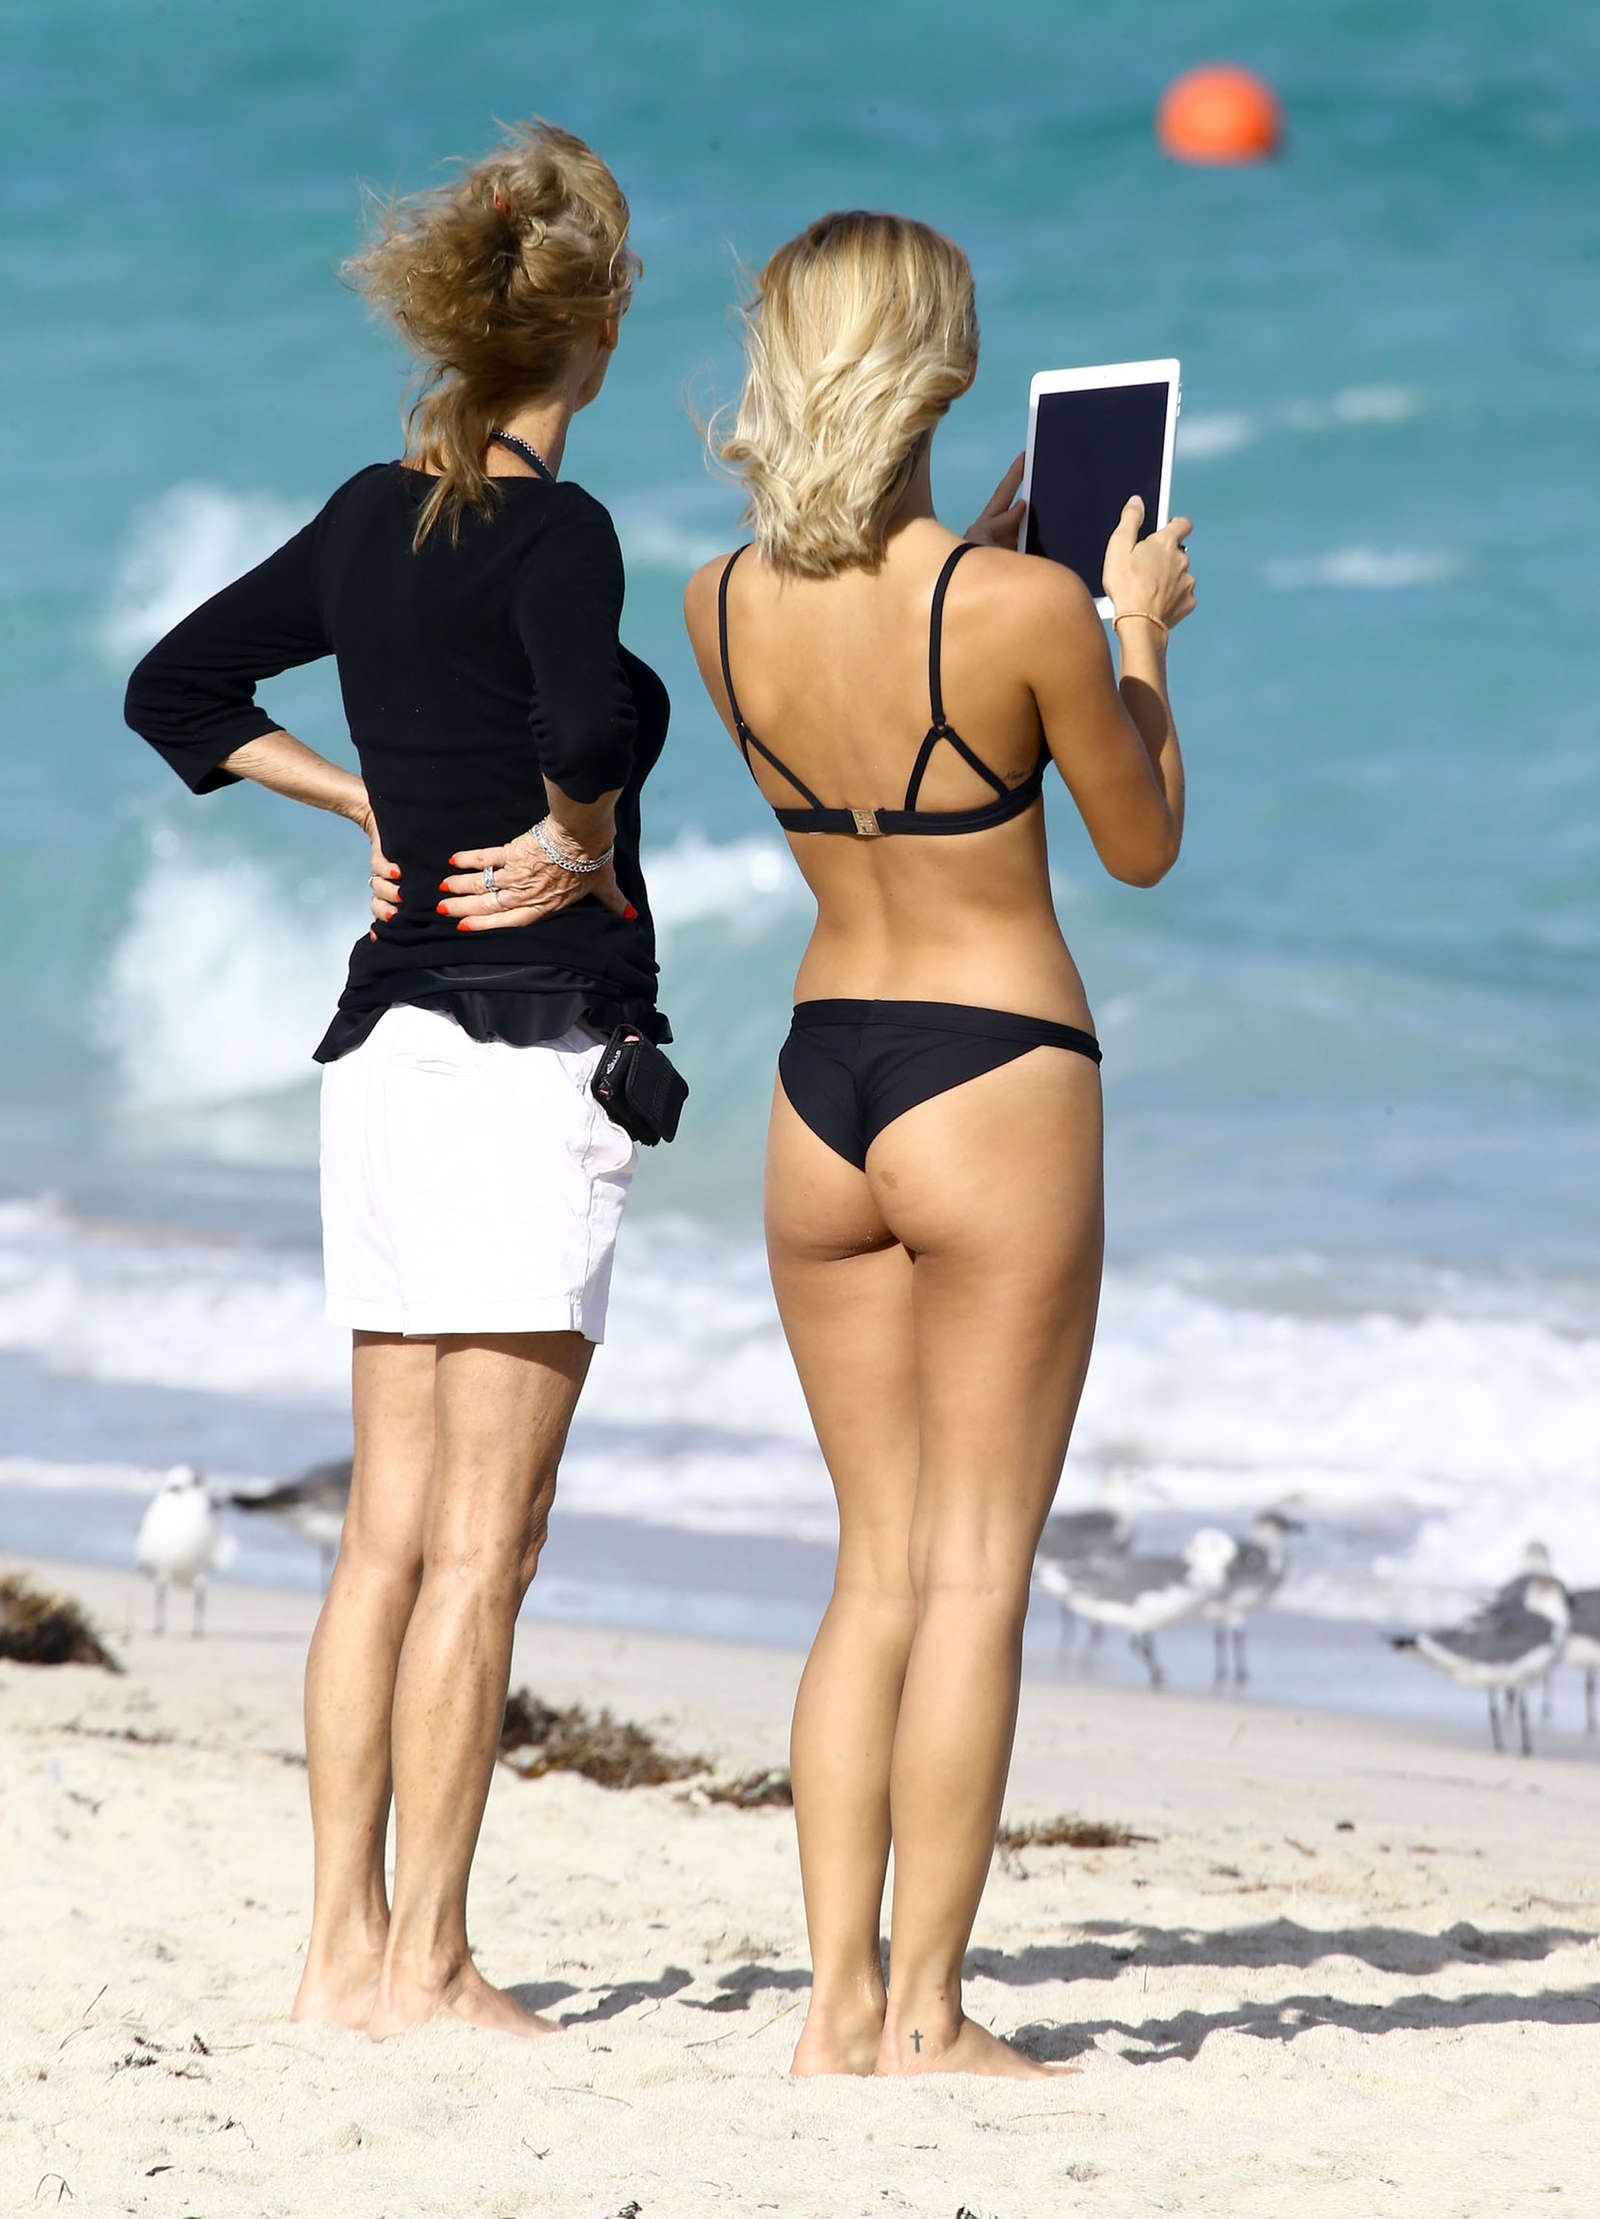 Selena Weber in Black Bikini at the Beach in Miami Pic 5 of 35